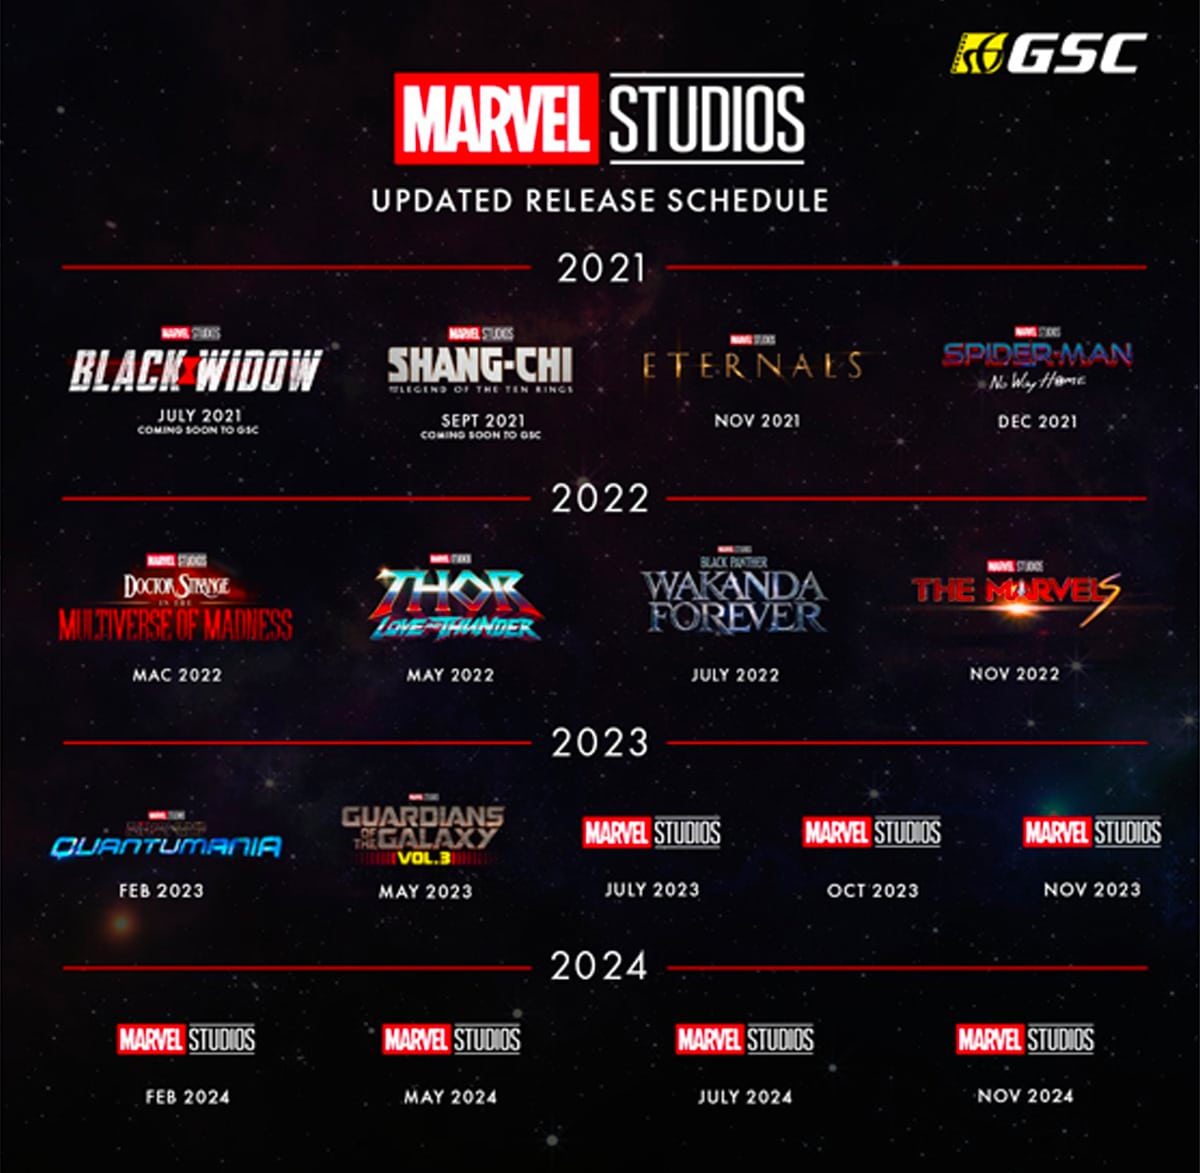 1 upcoming marvel movies release schedule